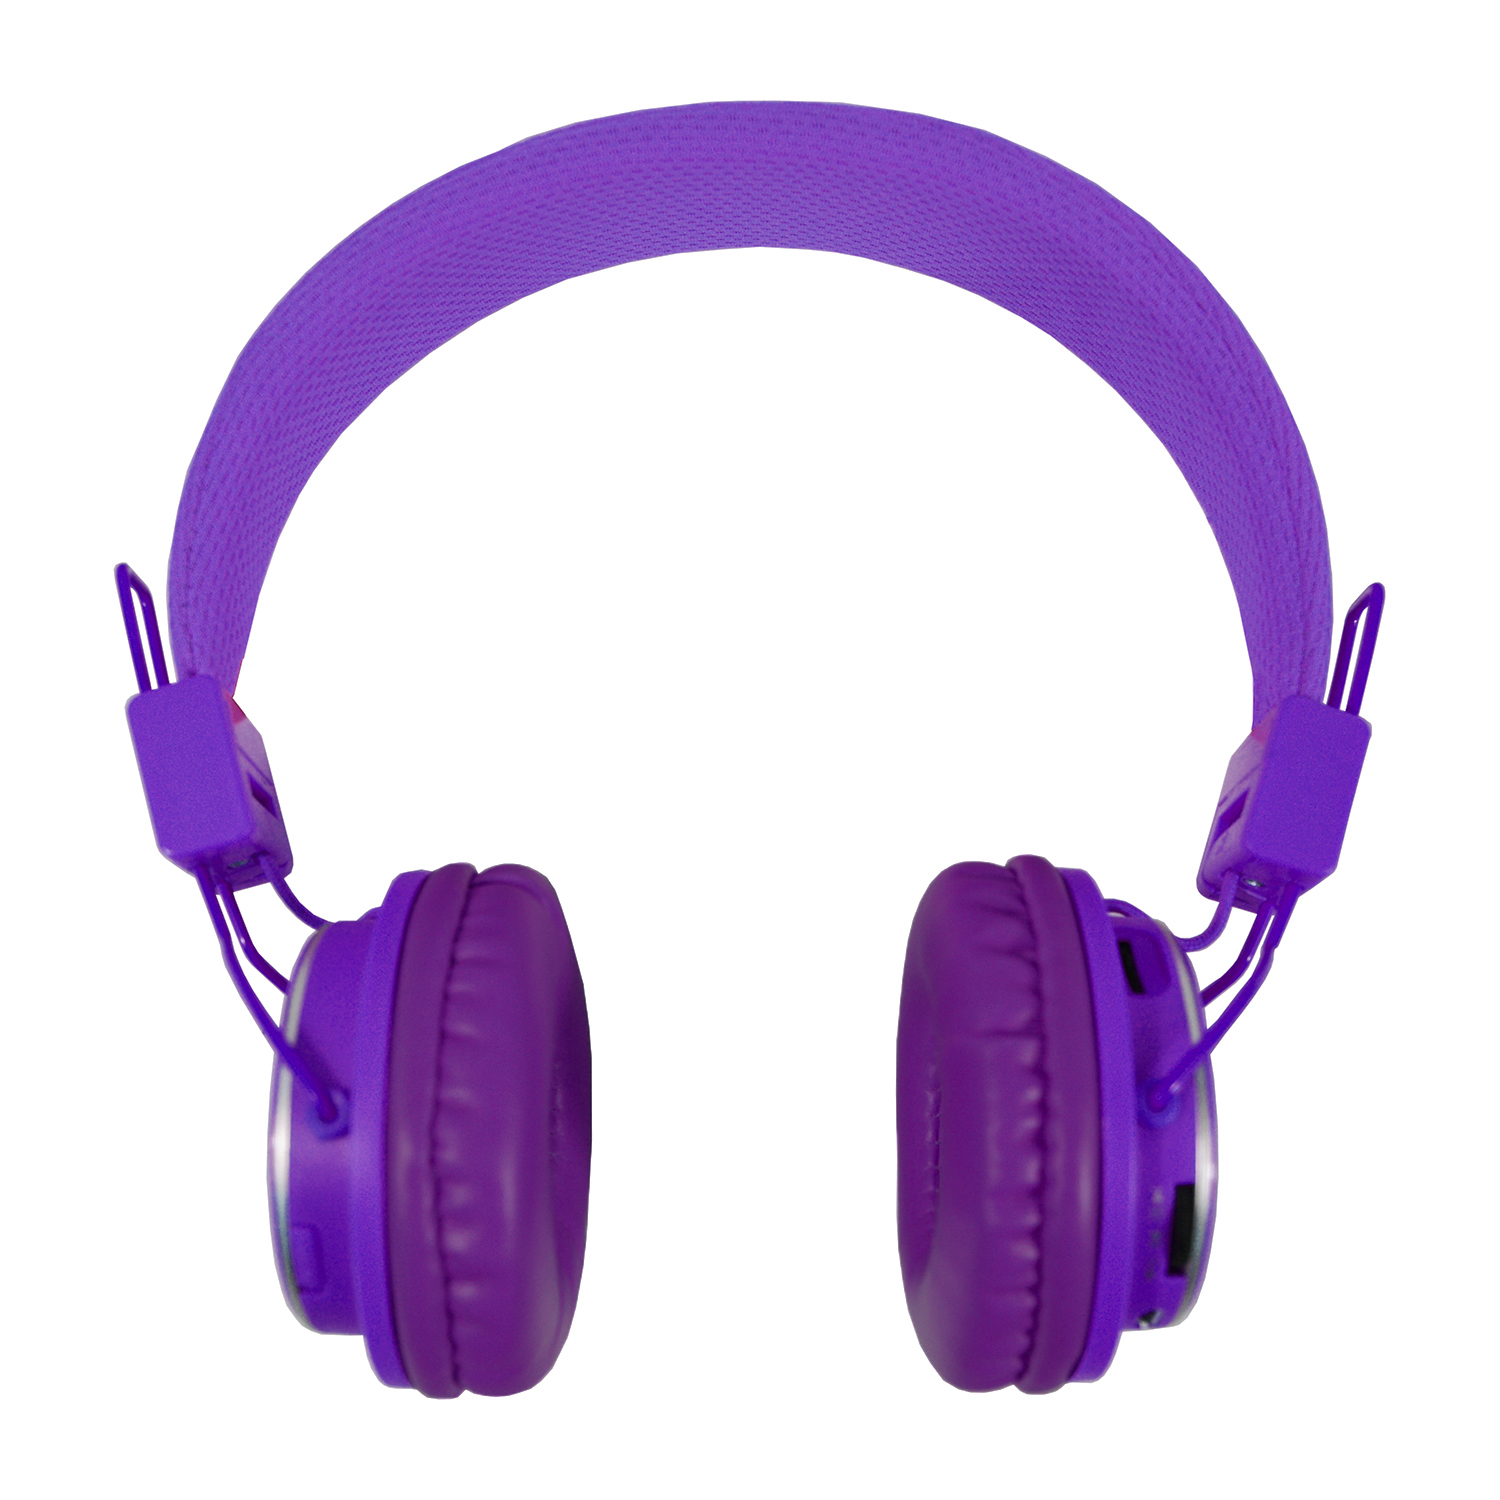 xit group collapsible bluetooth stereo on ear headphones multiple colors ebay. Black Bedroom Furniture Sets. Home Design Ideas